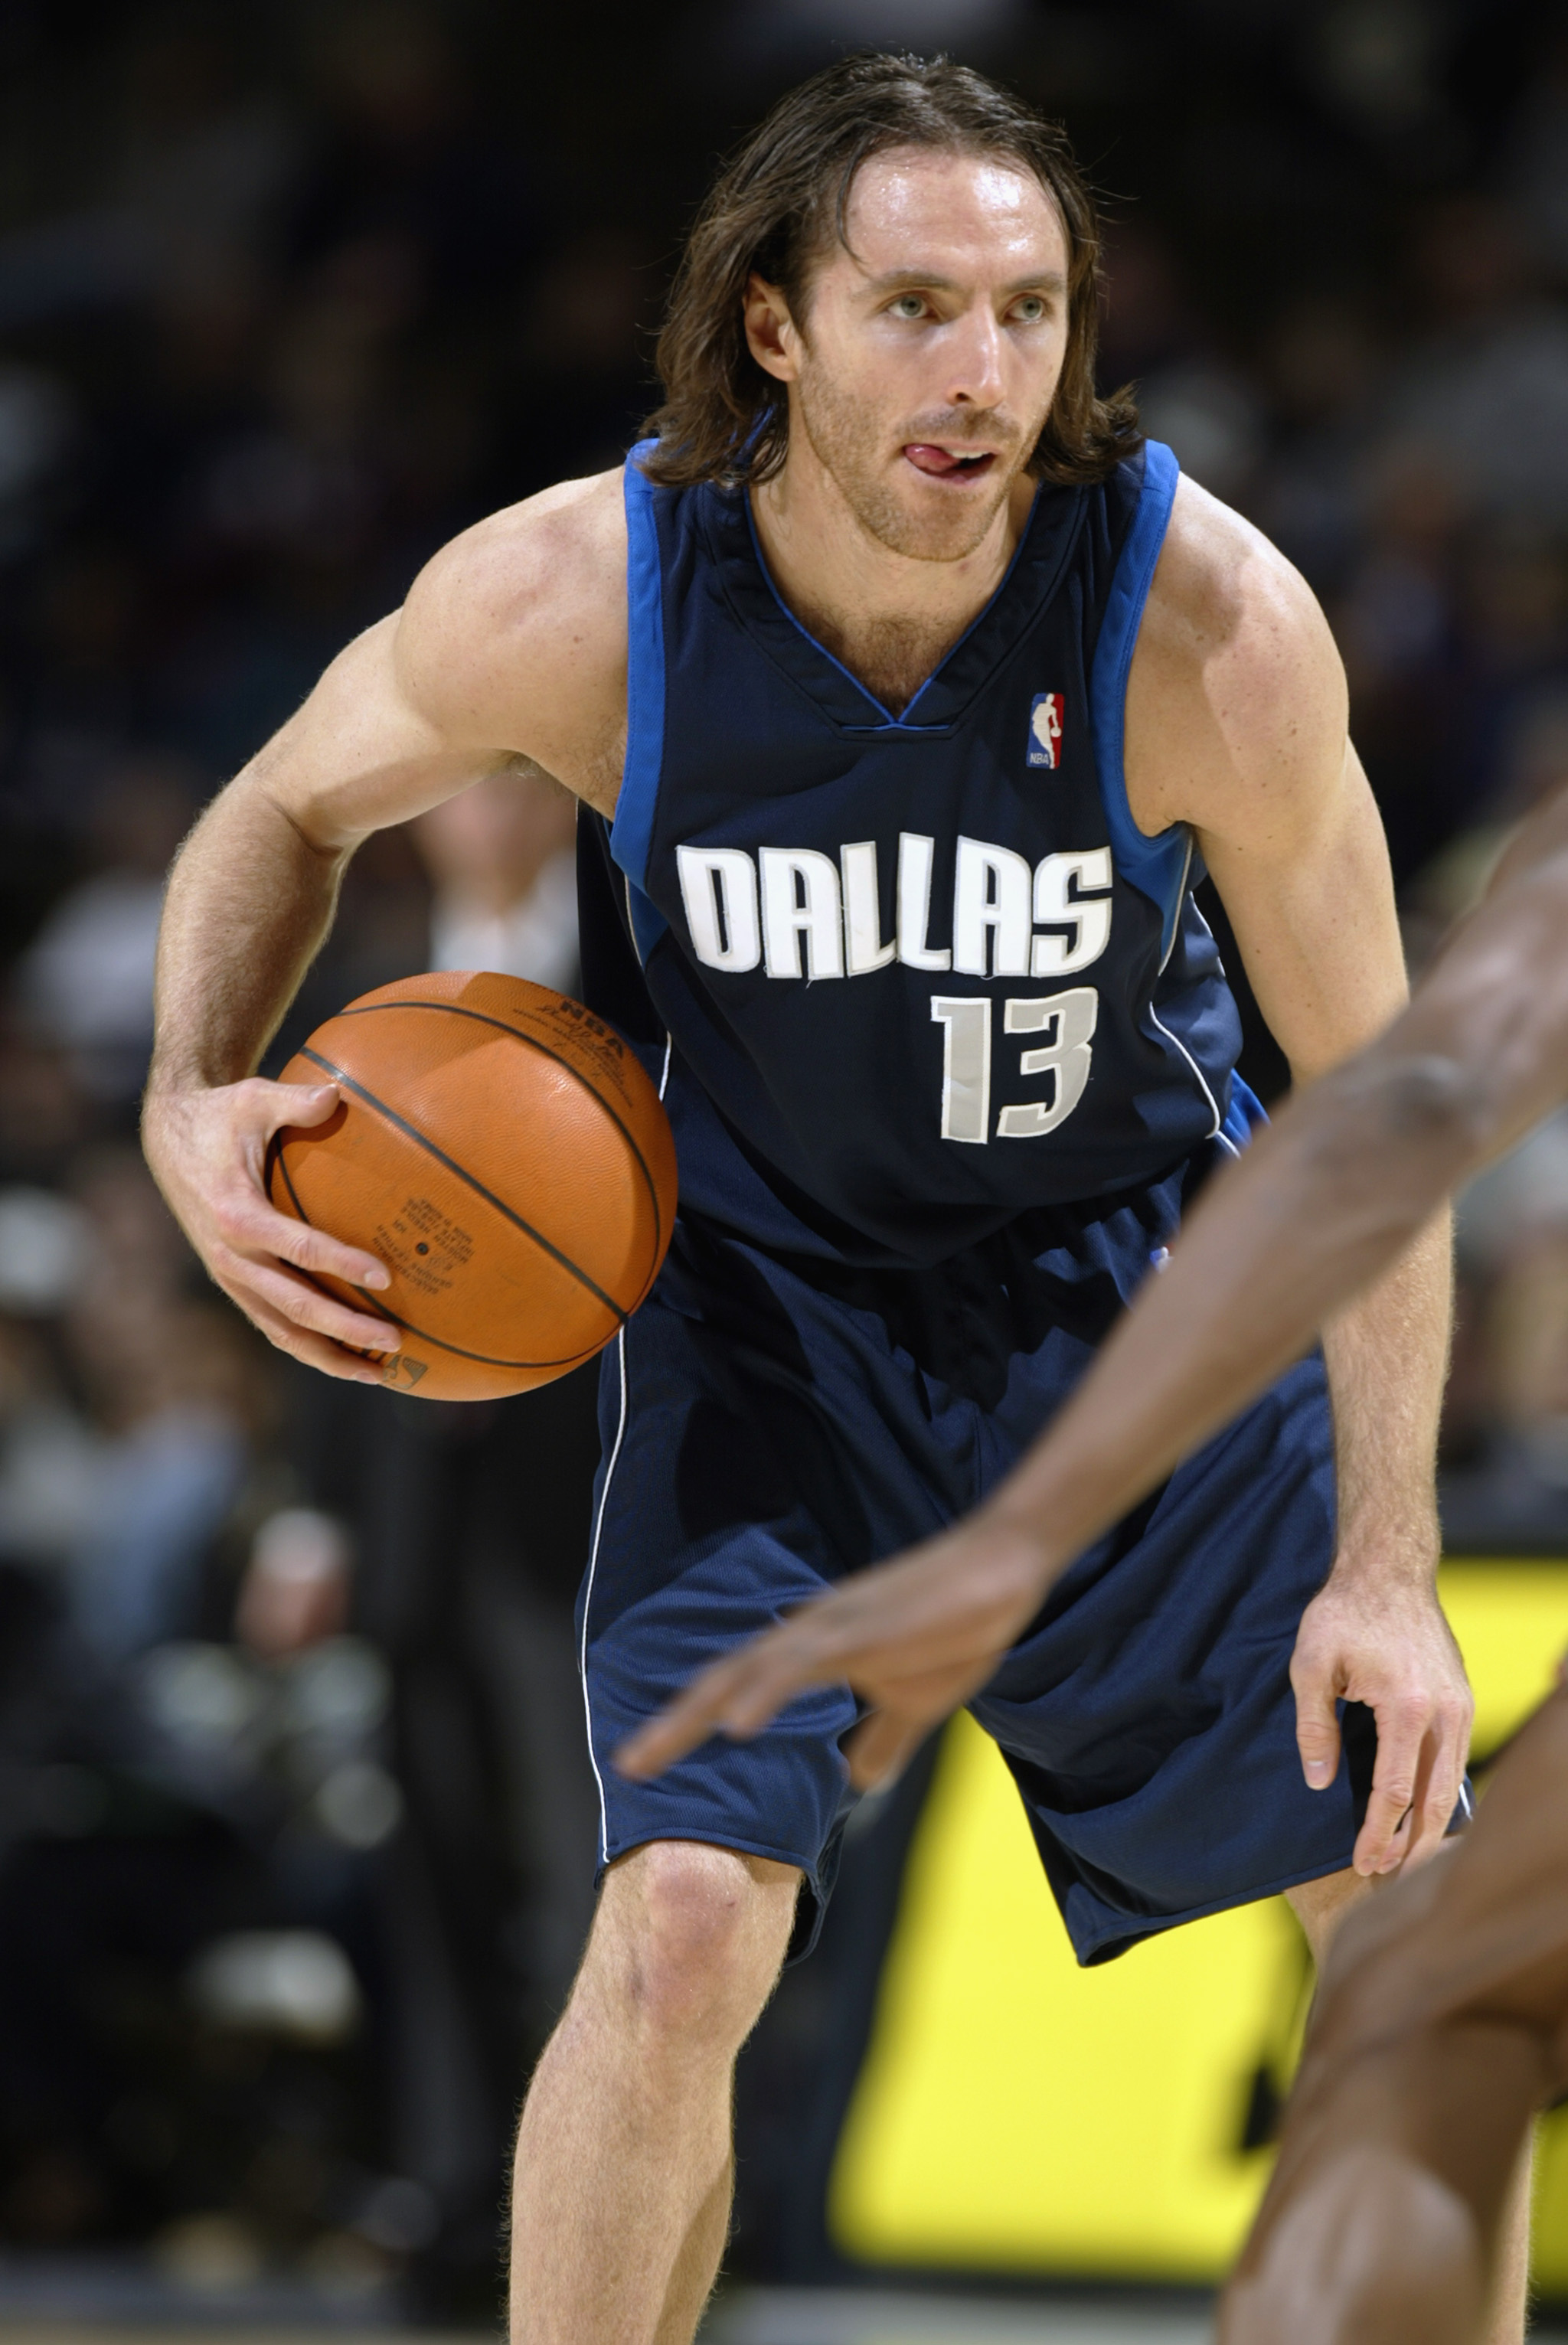 reputable site 3eadd 7e0e8 NBA Trade Rumors: Steve Nash Could Be Headed to The ...